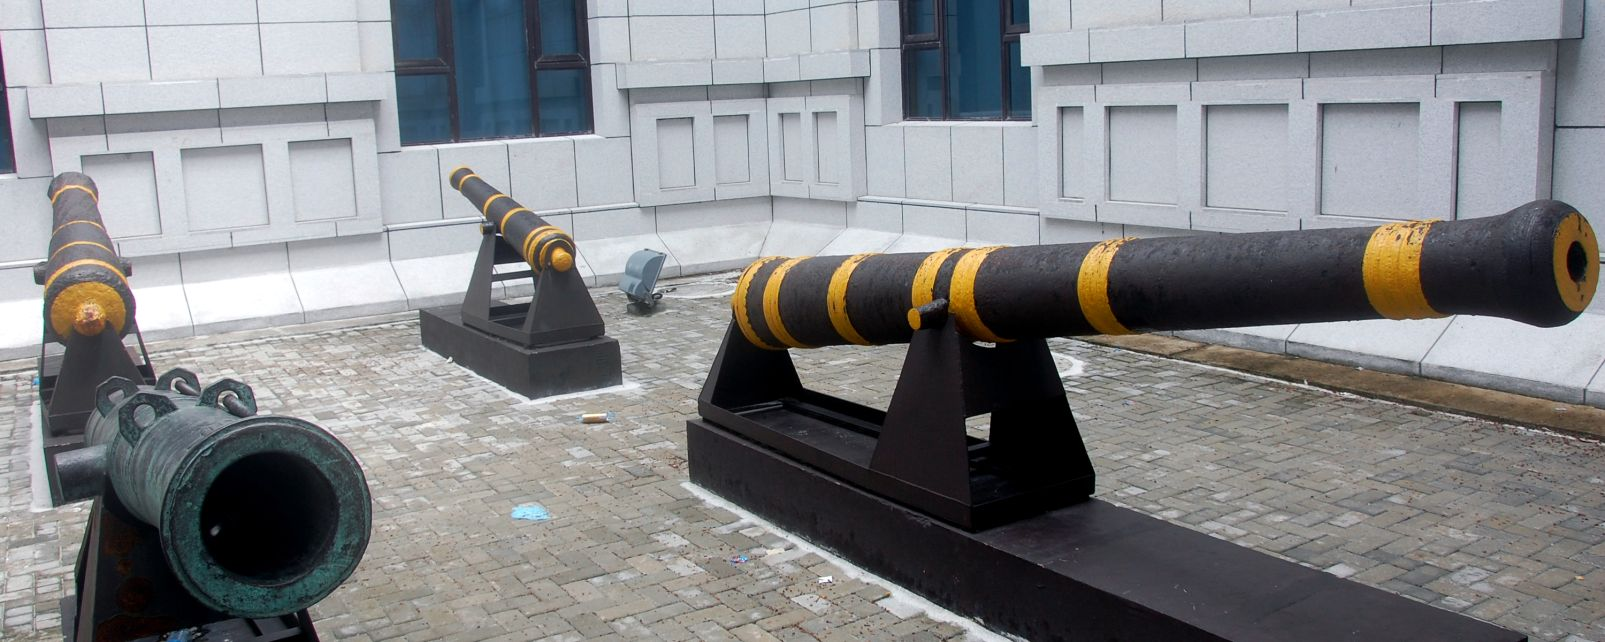 The National Museum of Malé, Maldives, The Male National Museum, Arts and culture, The Maldives